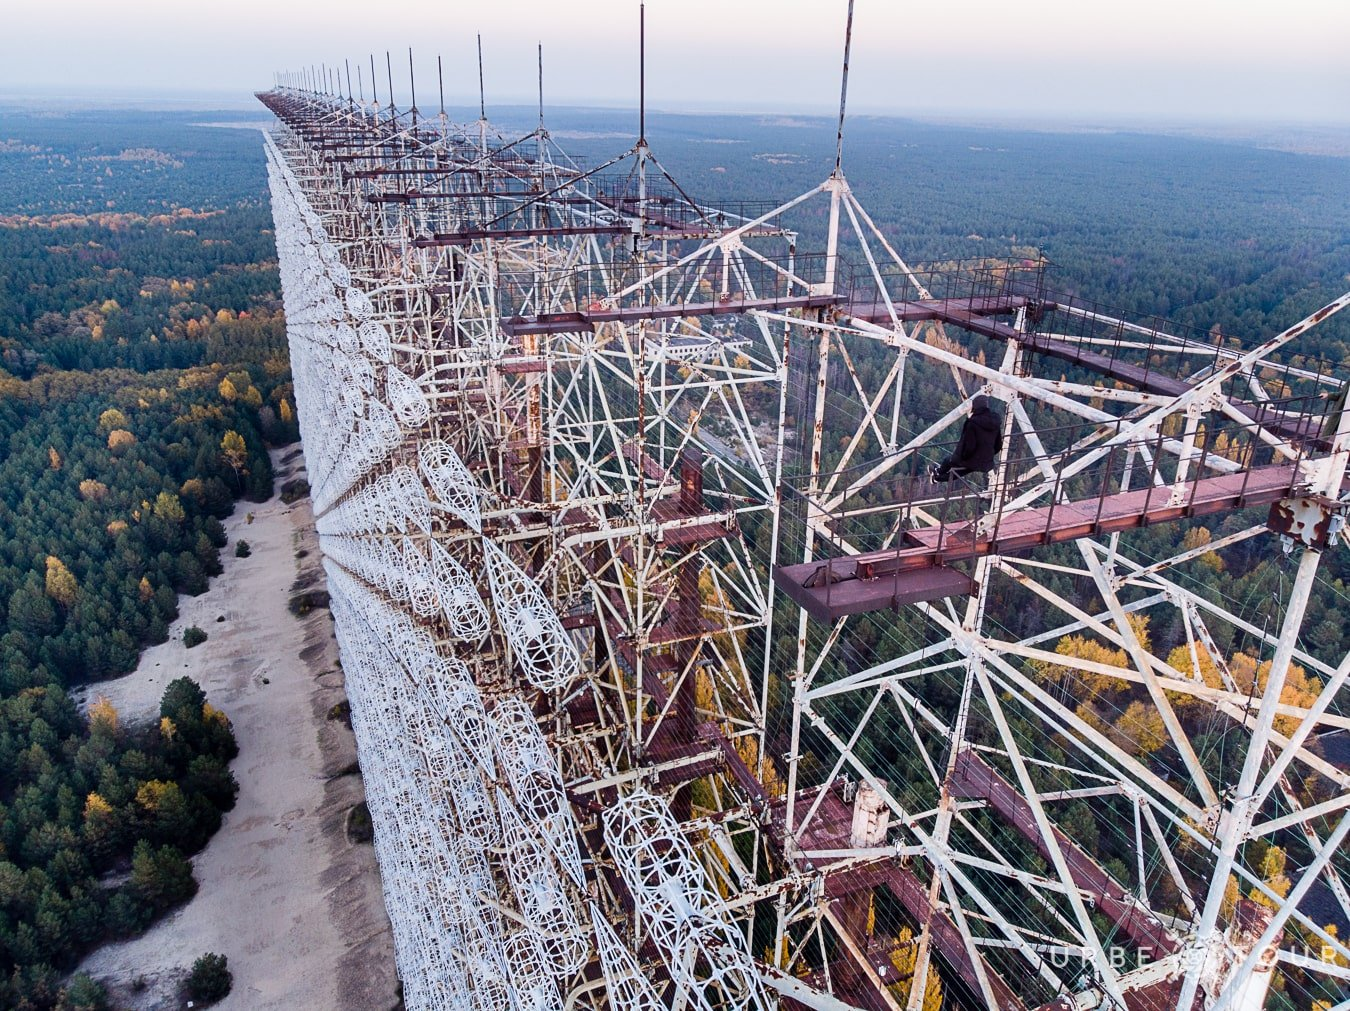 duga radar station from drone